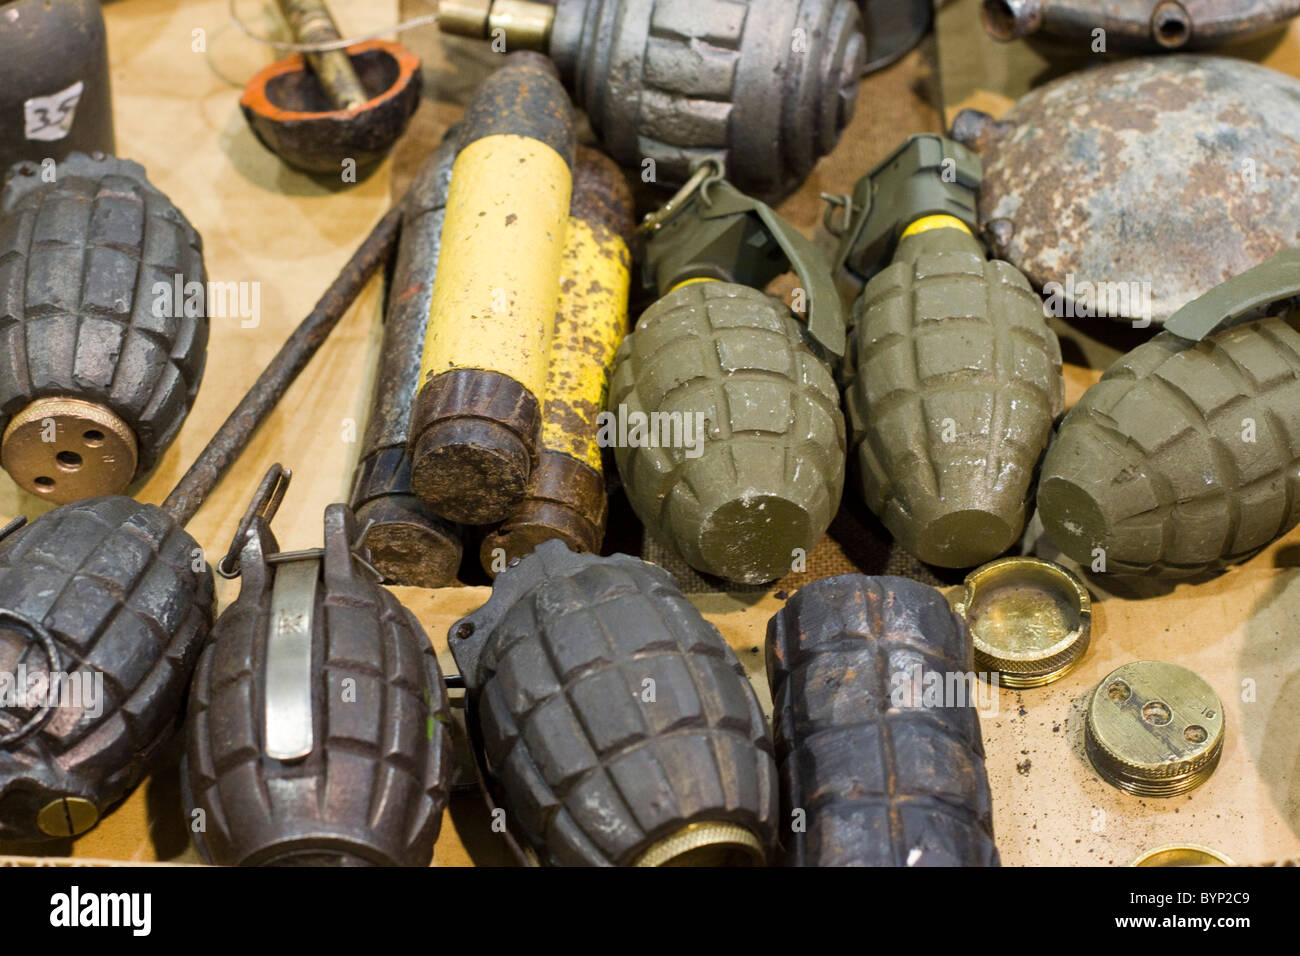 A Collection of Grenades on show at Stoneleigh Militaria Show - Stock Image